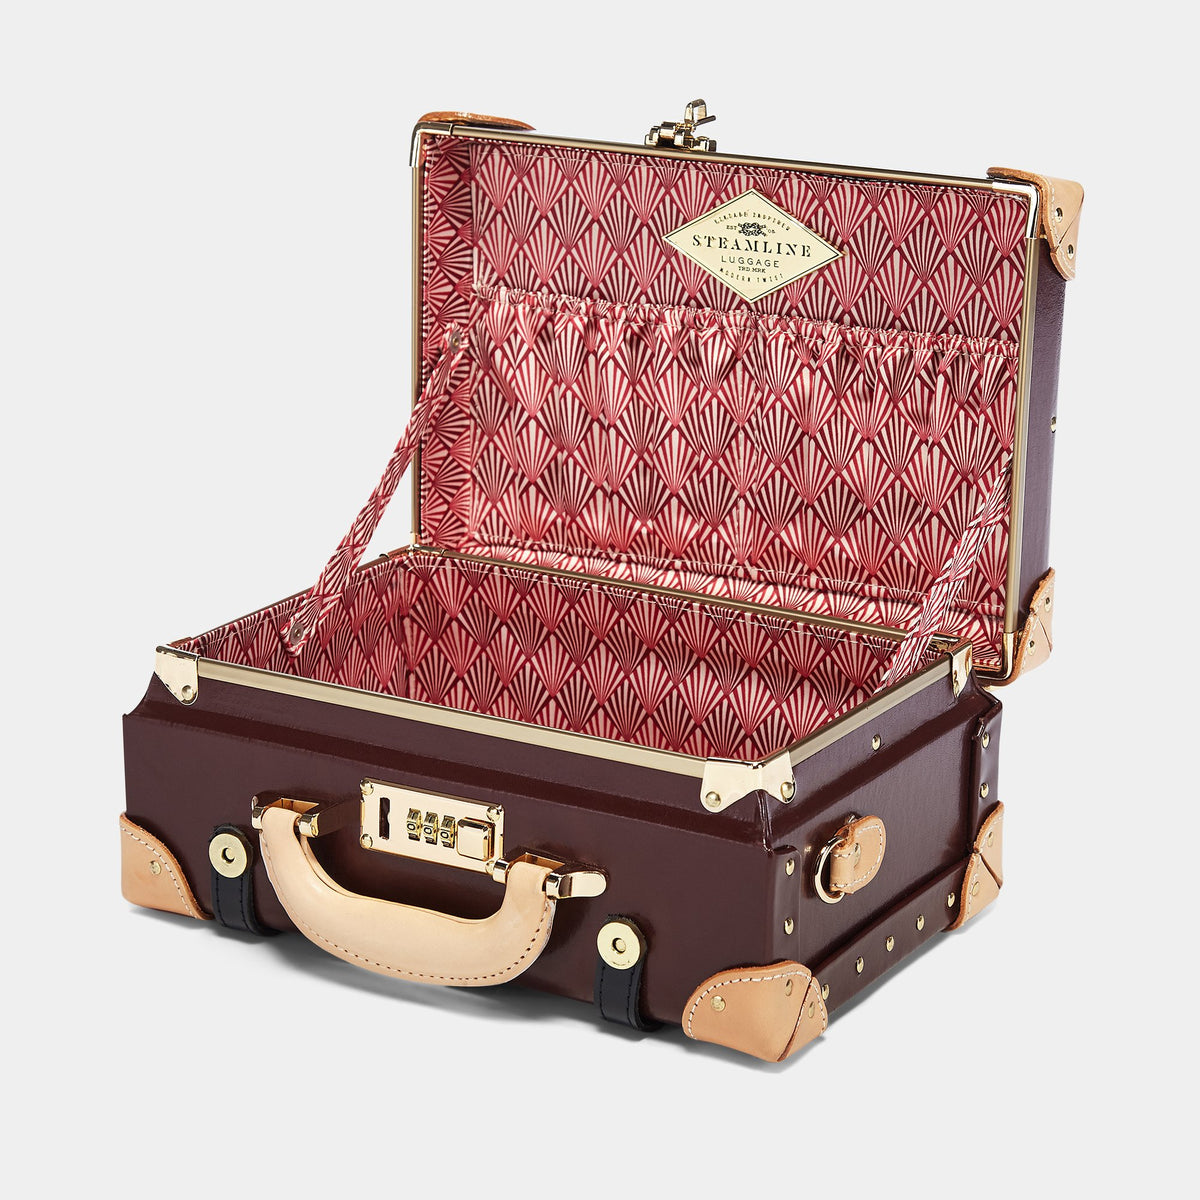 The Architect Vanity in Burgundy - Vintage Style Leather Case - Interior Front